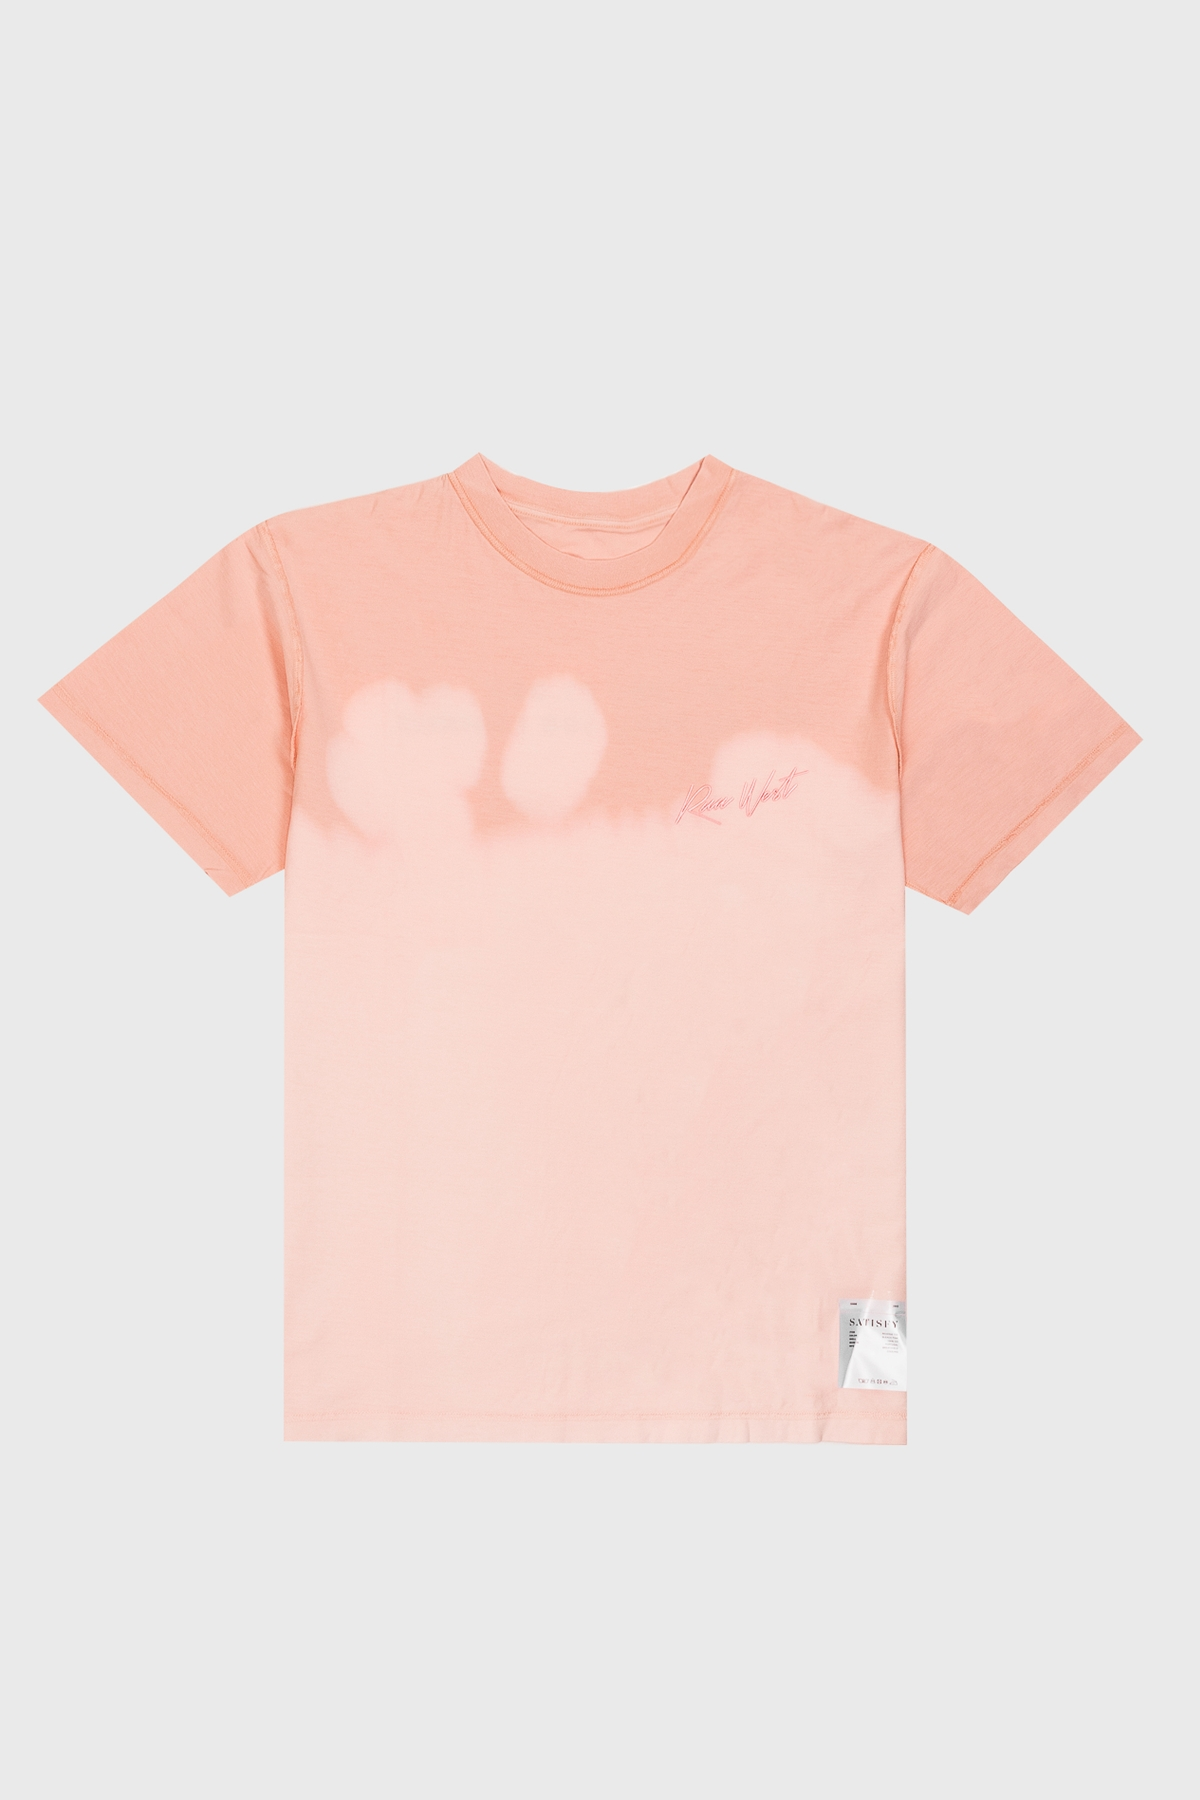 Distance x satisfy - Reverse Tee - Pink